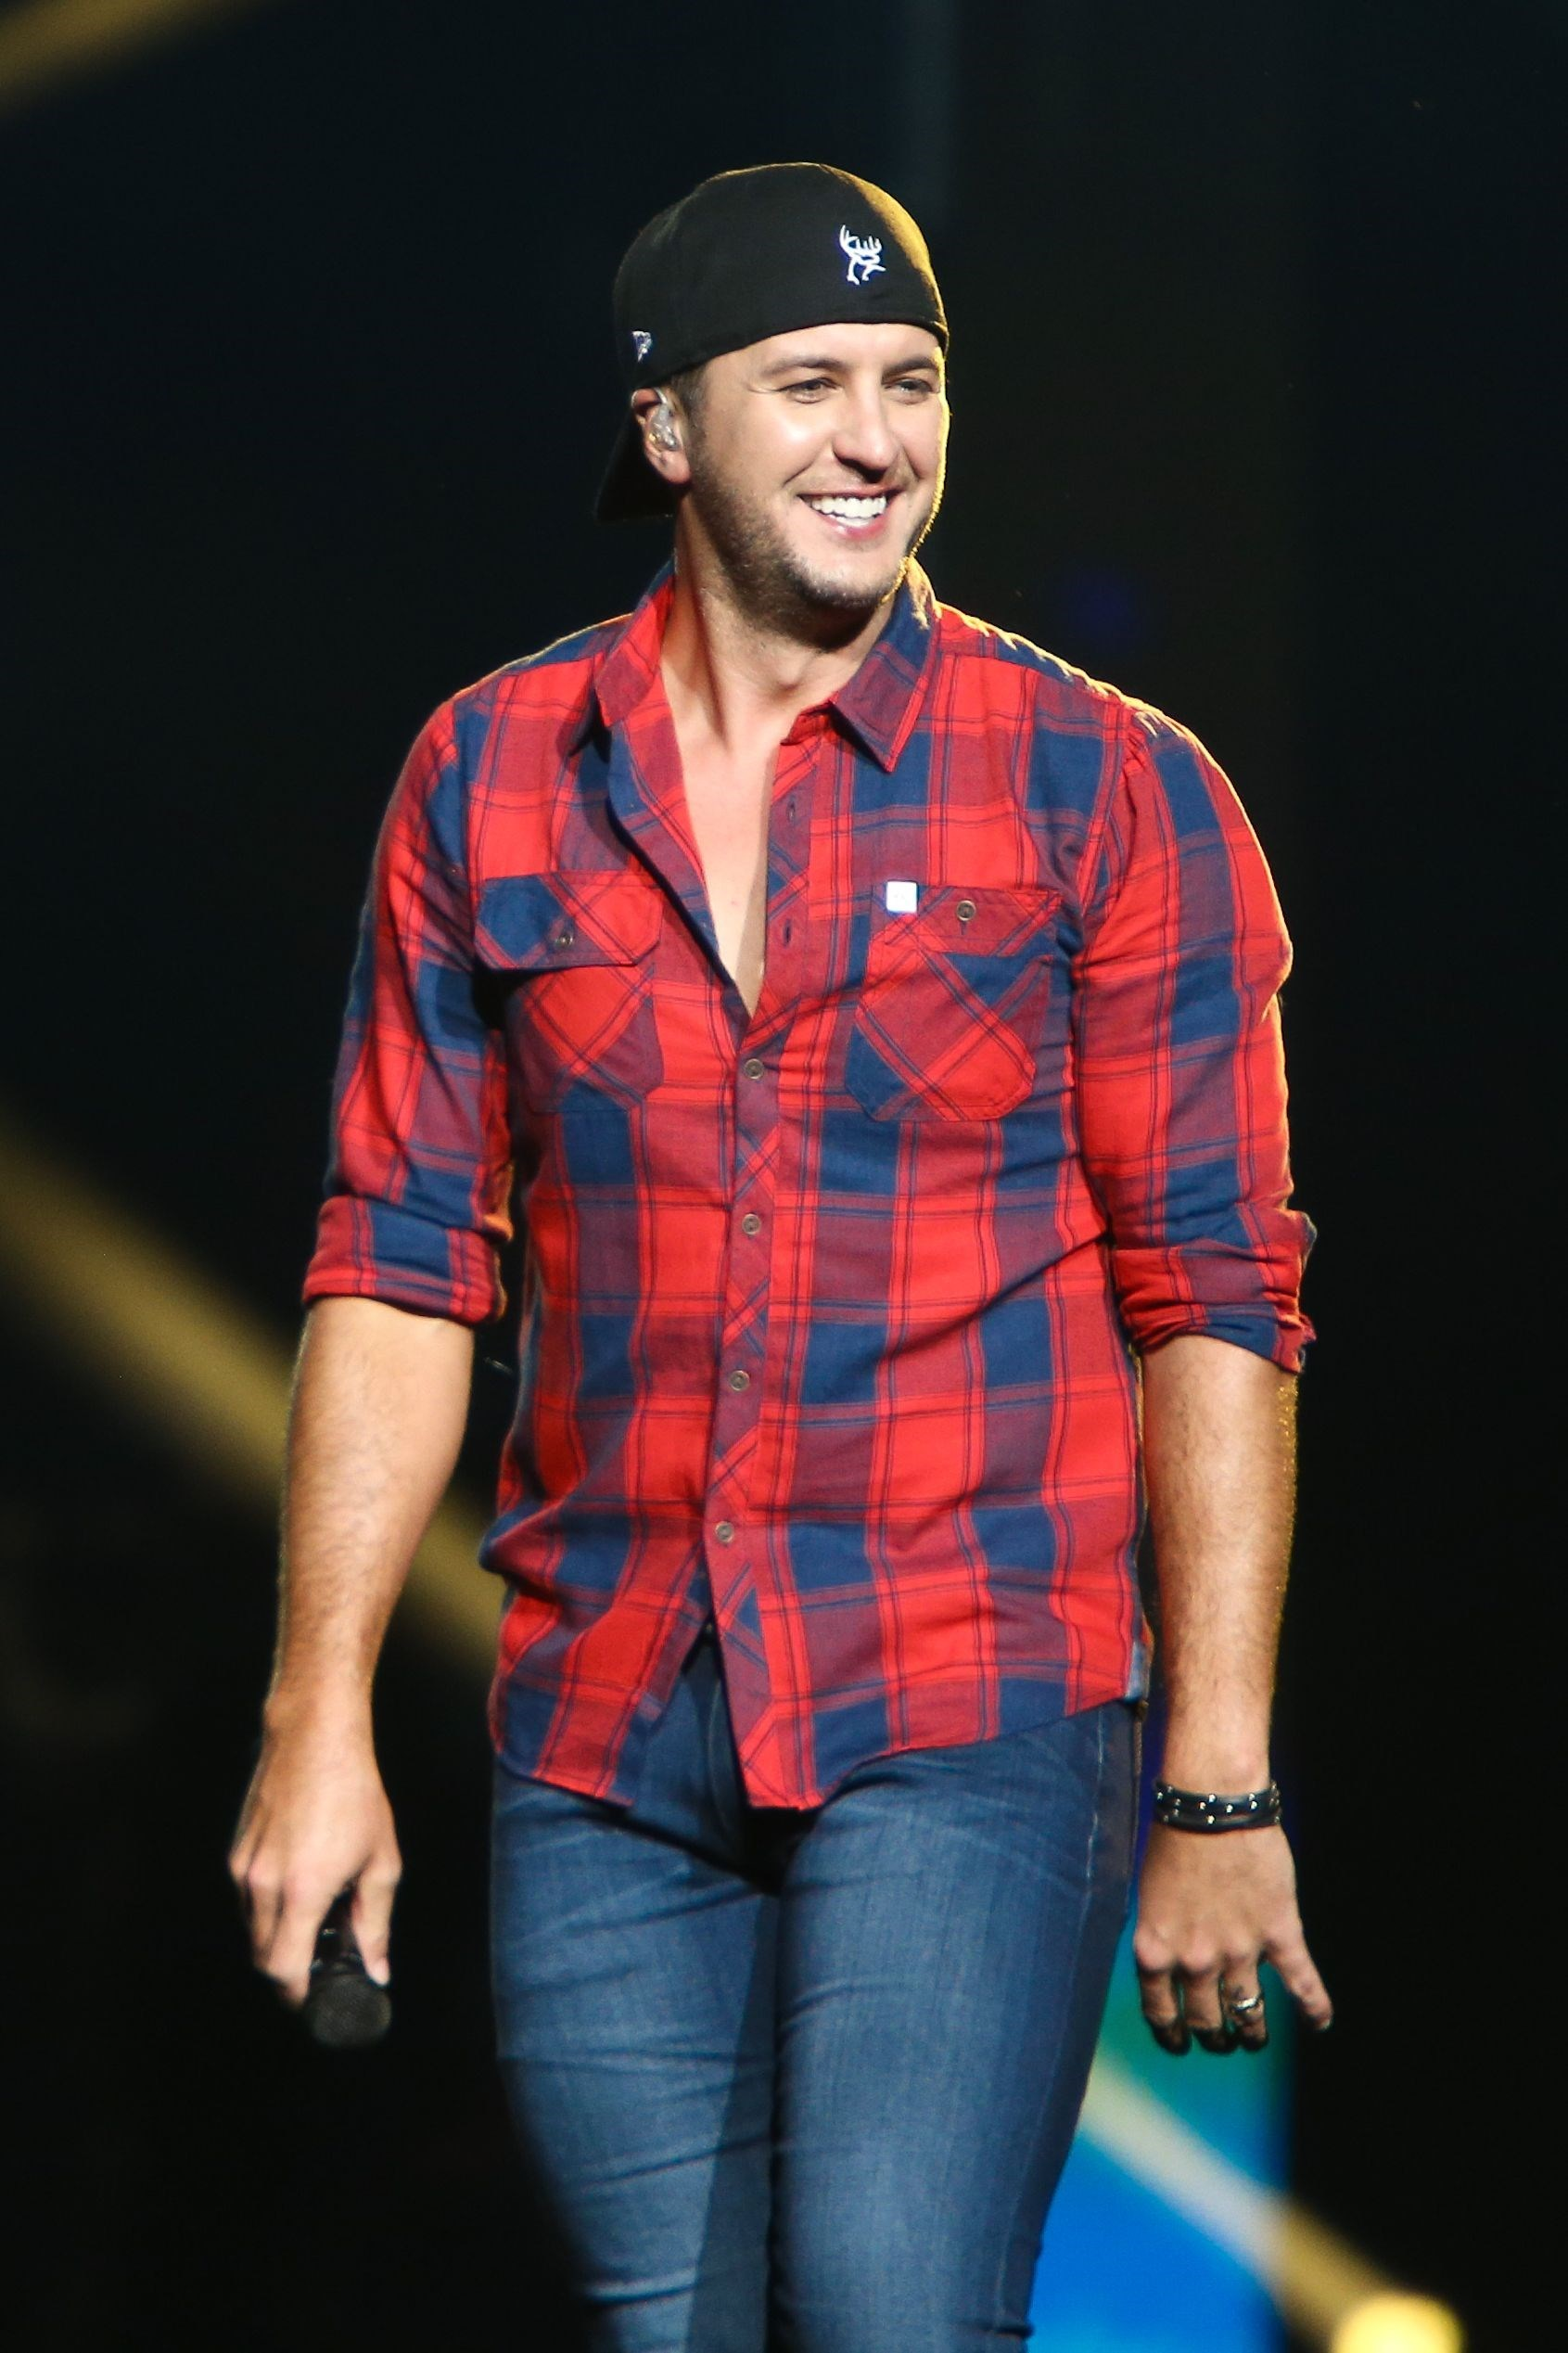 Luke Bryan Performing Celebs Pics For Feb 27 March 3 2017 Gallery